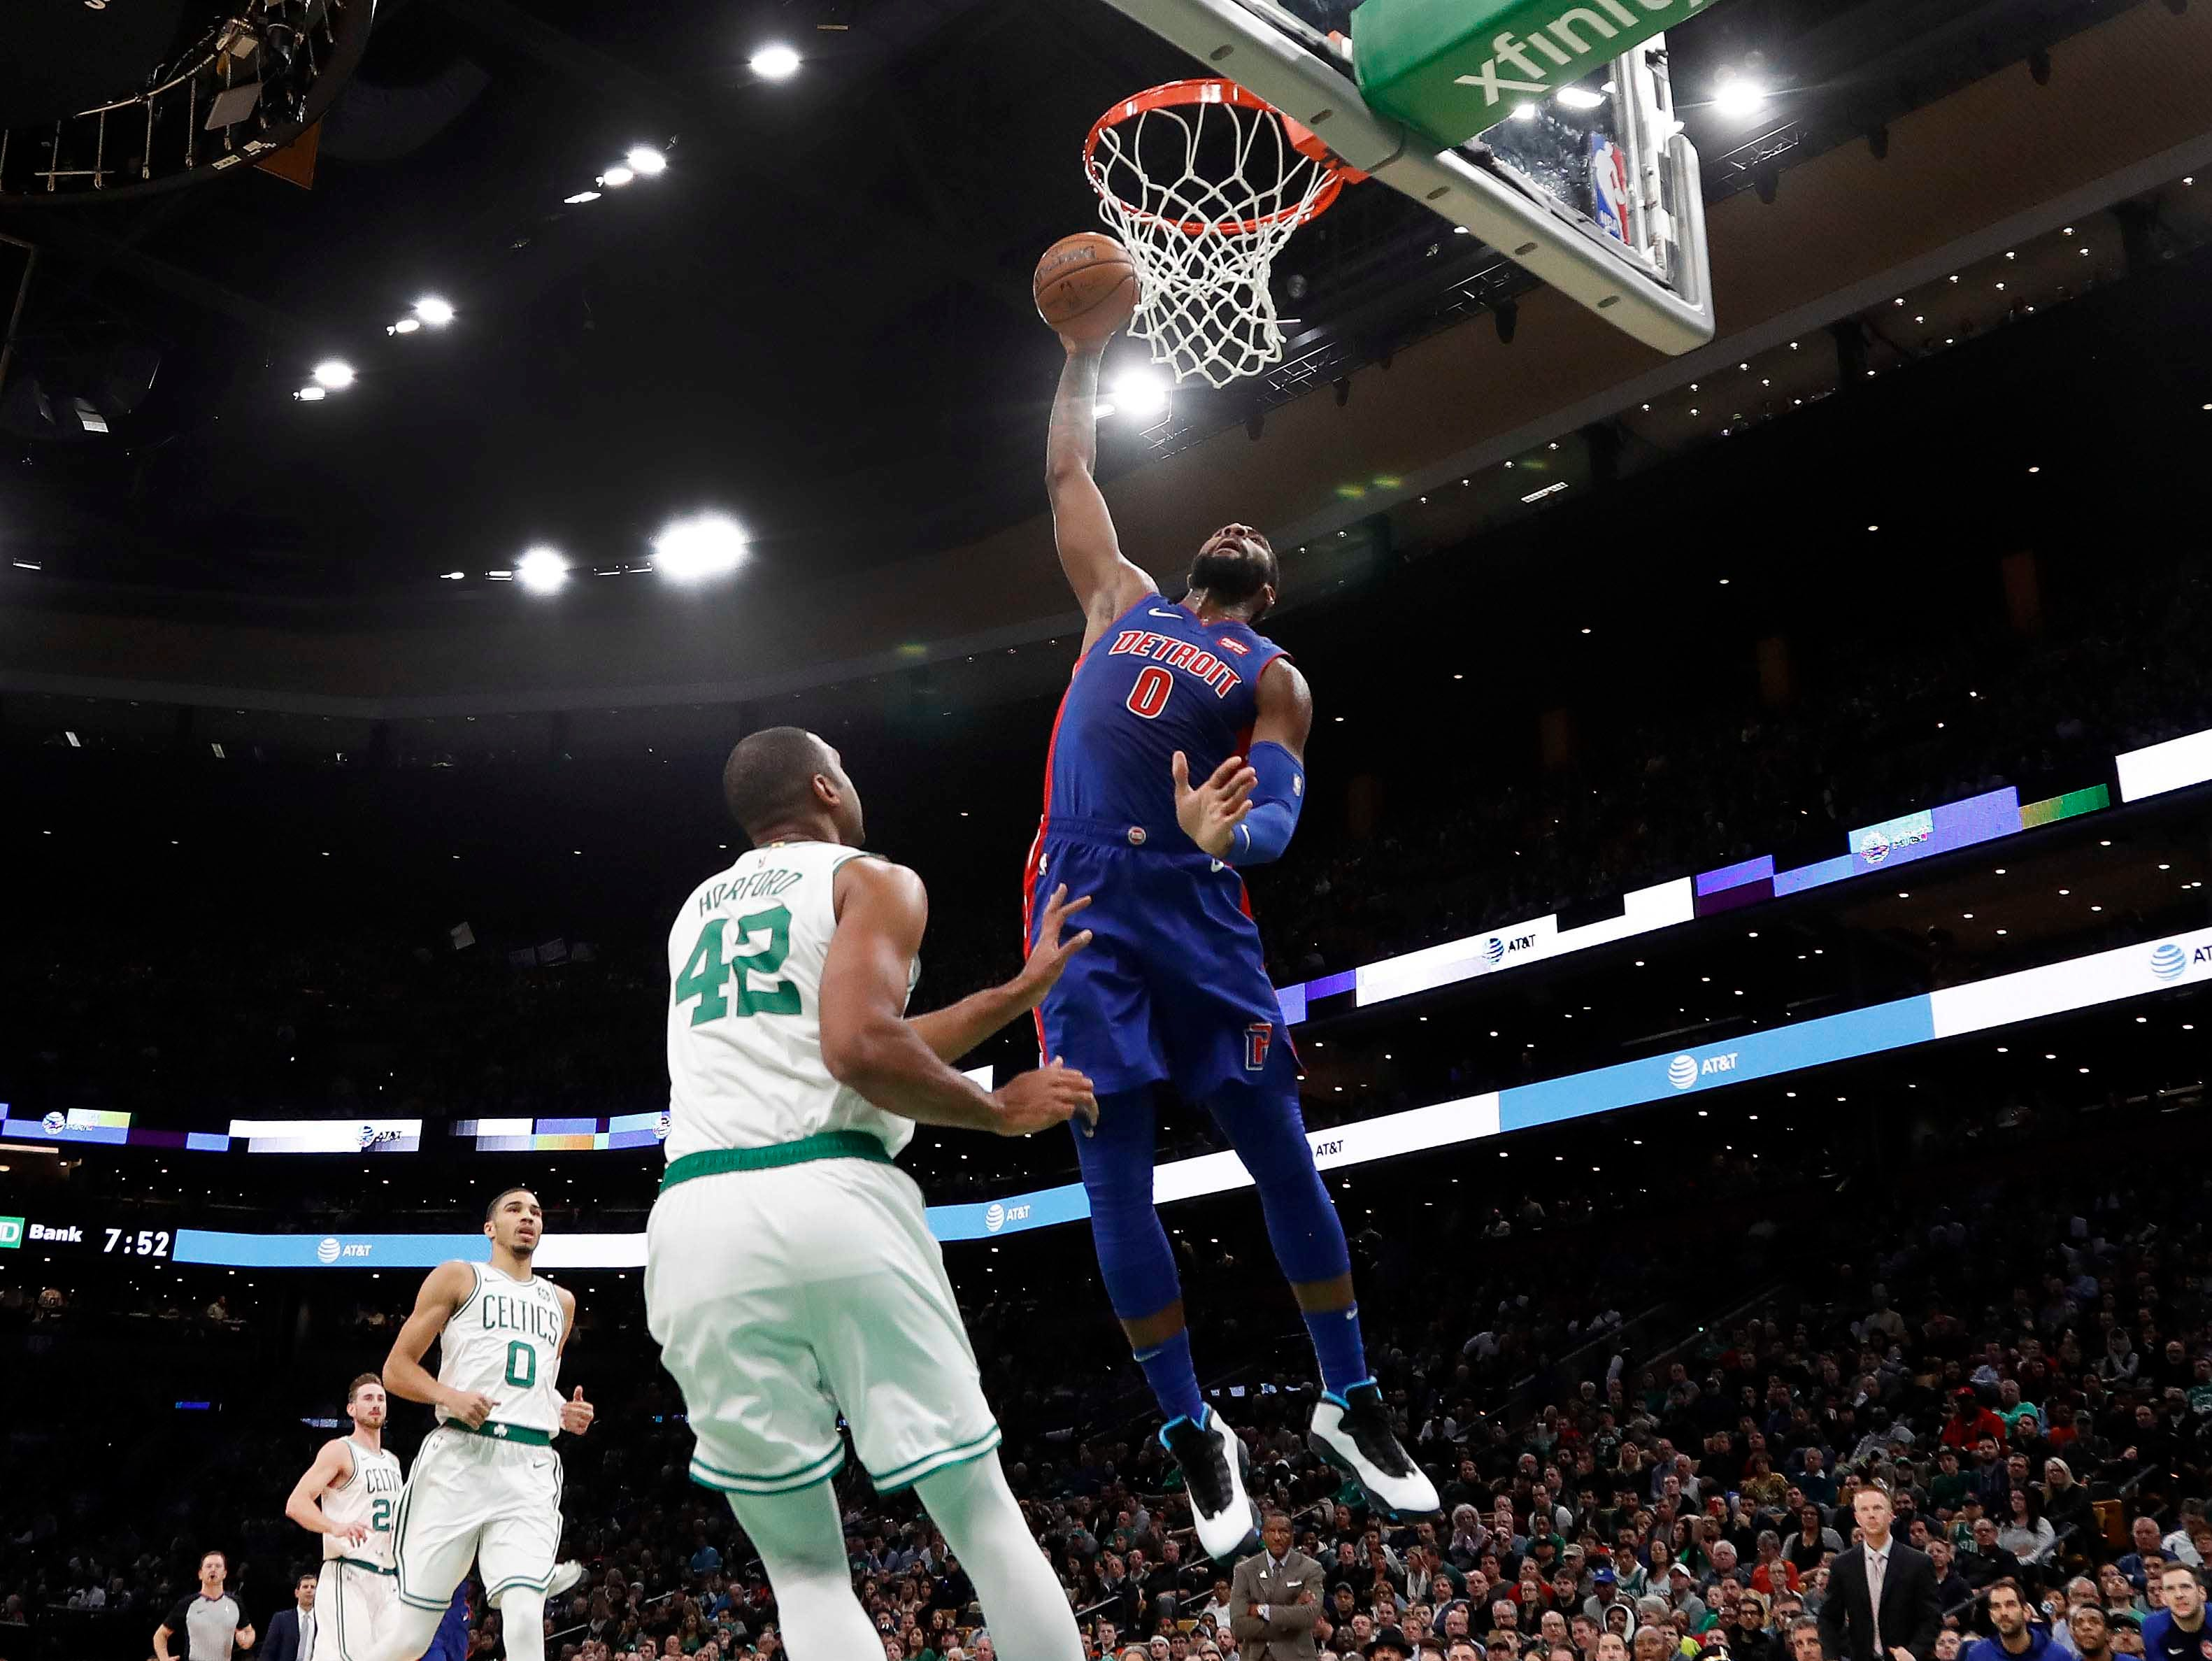 Oct. 30: Detroit Pistons center Andre Drummond goes up for a dunk over Boston Celtics center Al Horford during the first quarter at TD Garden.